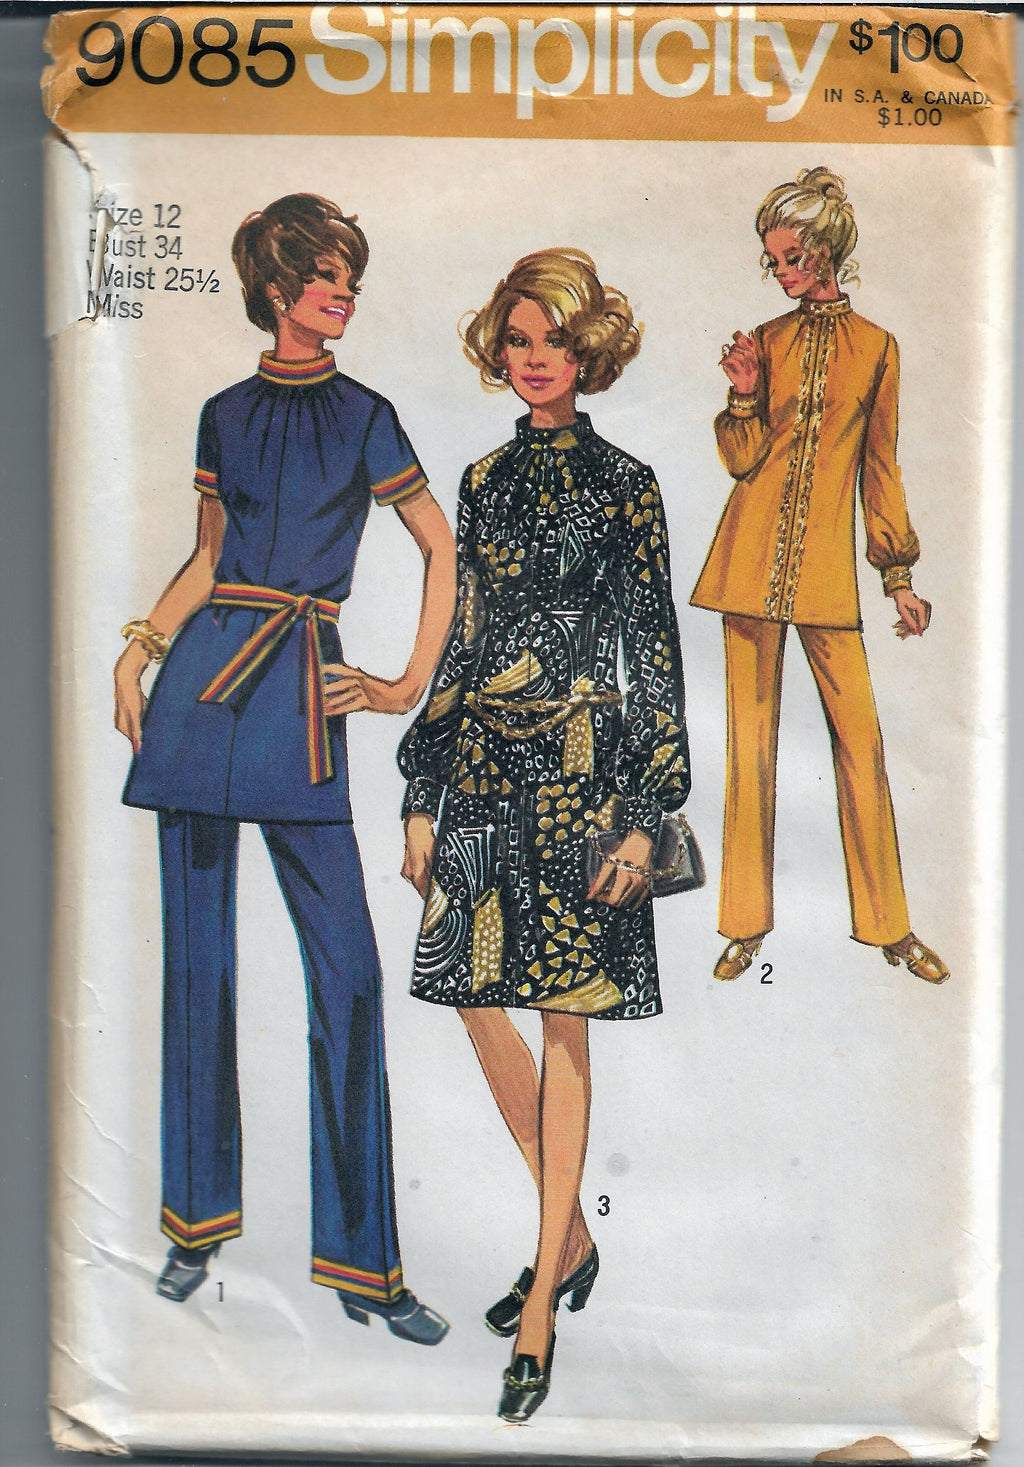 Simplicity 9085 Ladies Dress Tunic Vintage Sewing Pattern 1970s - VintageStitching - Vintage Sewing Patterns